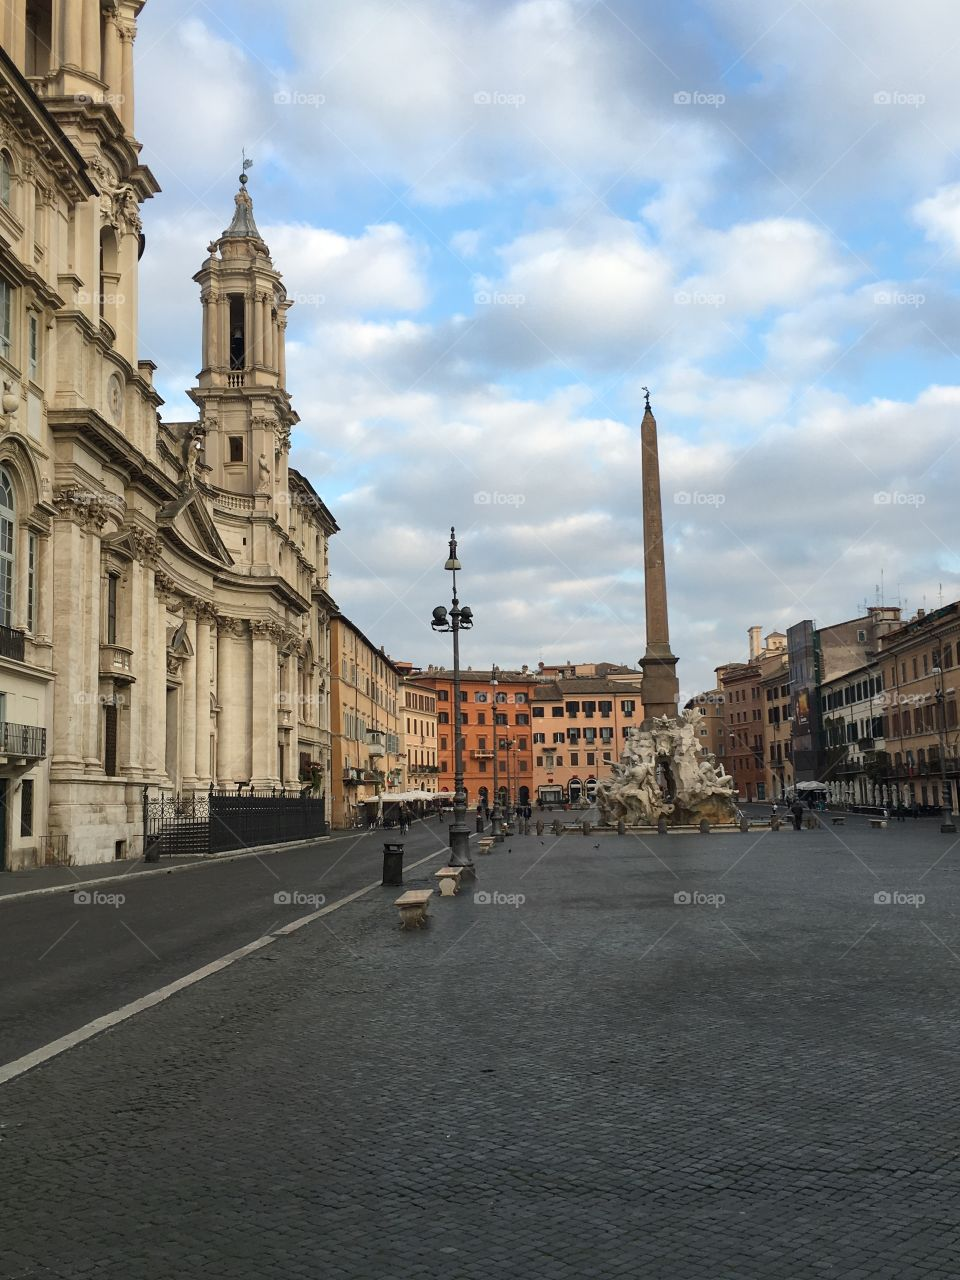 View of Piazza Navona, Rome,Italy